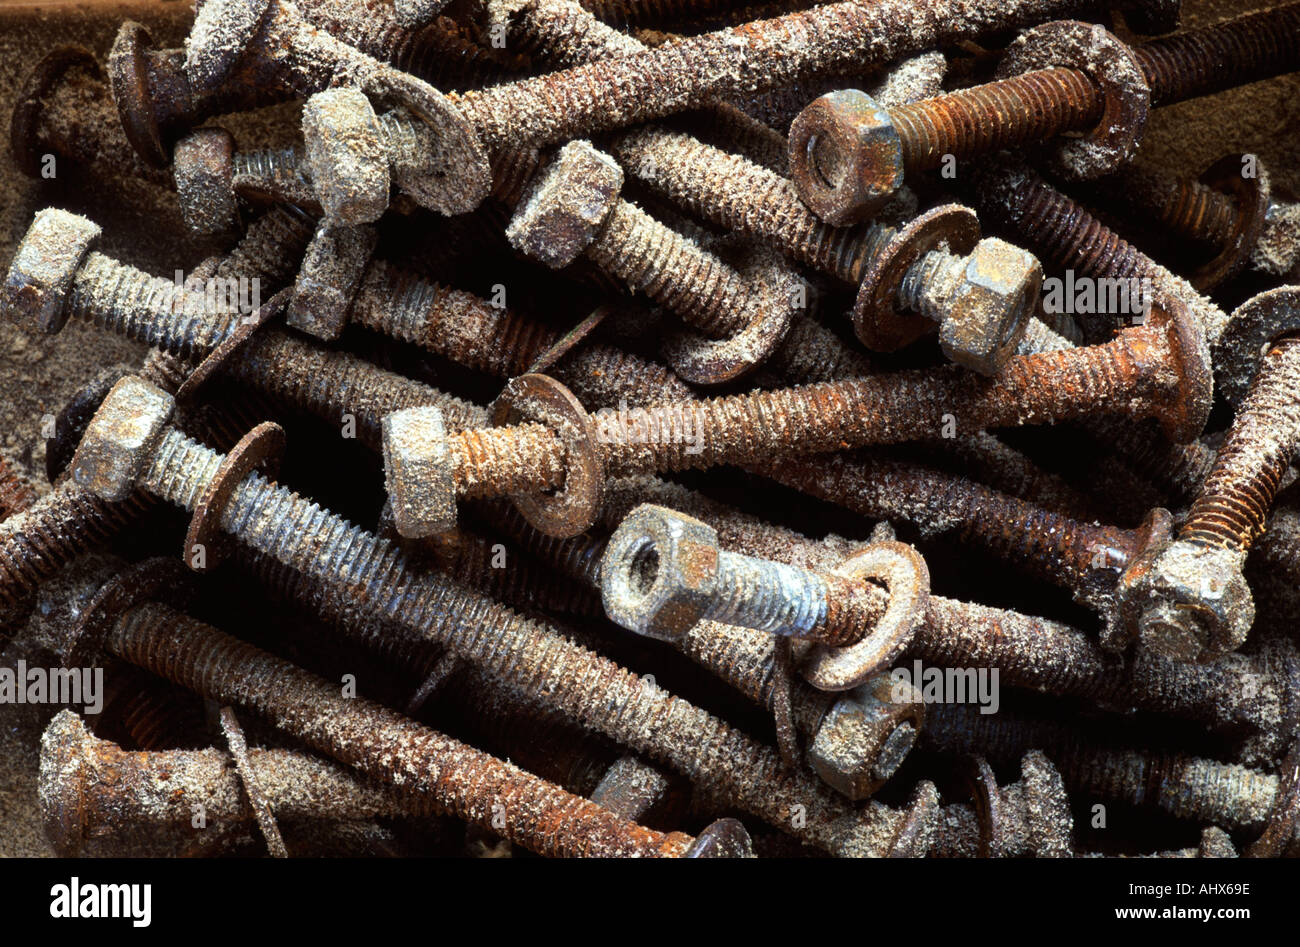 Rusty and dusty nuts bolts and washers Stock Photo